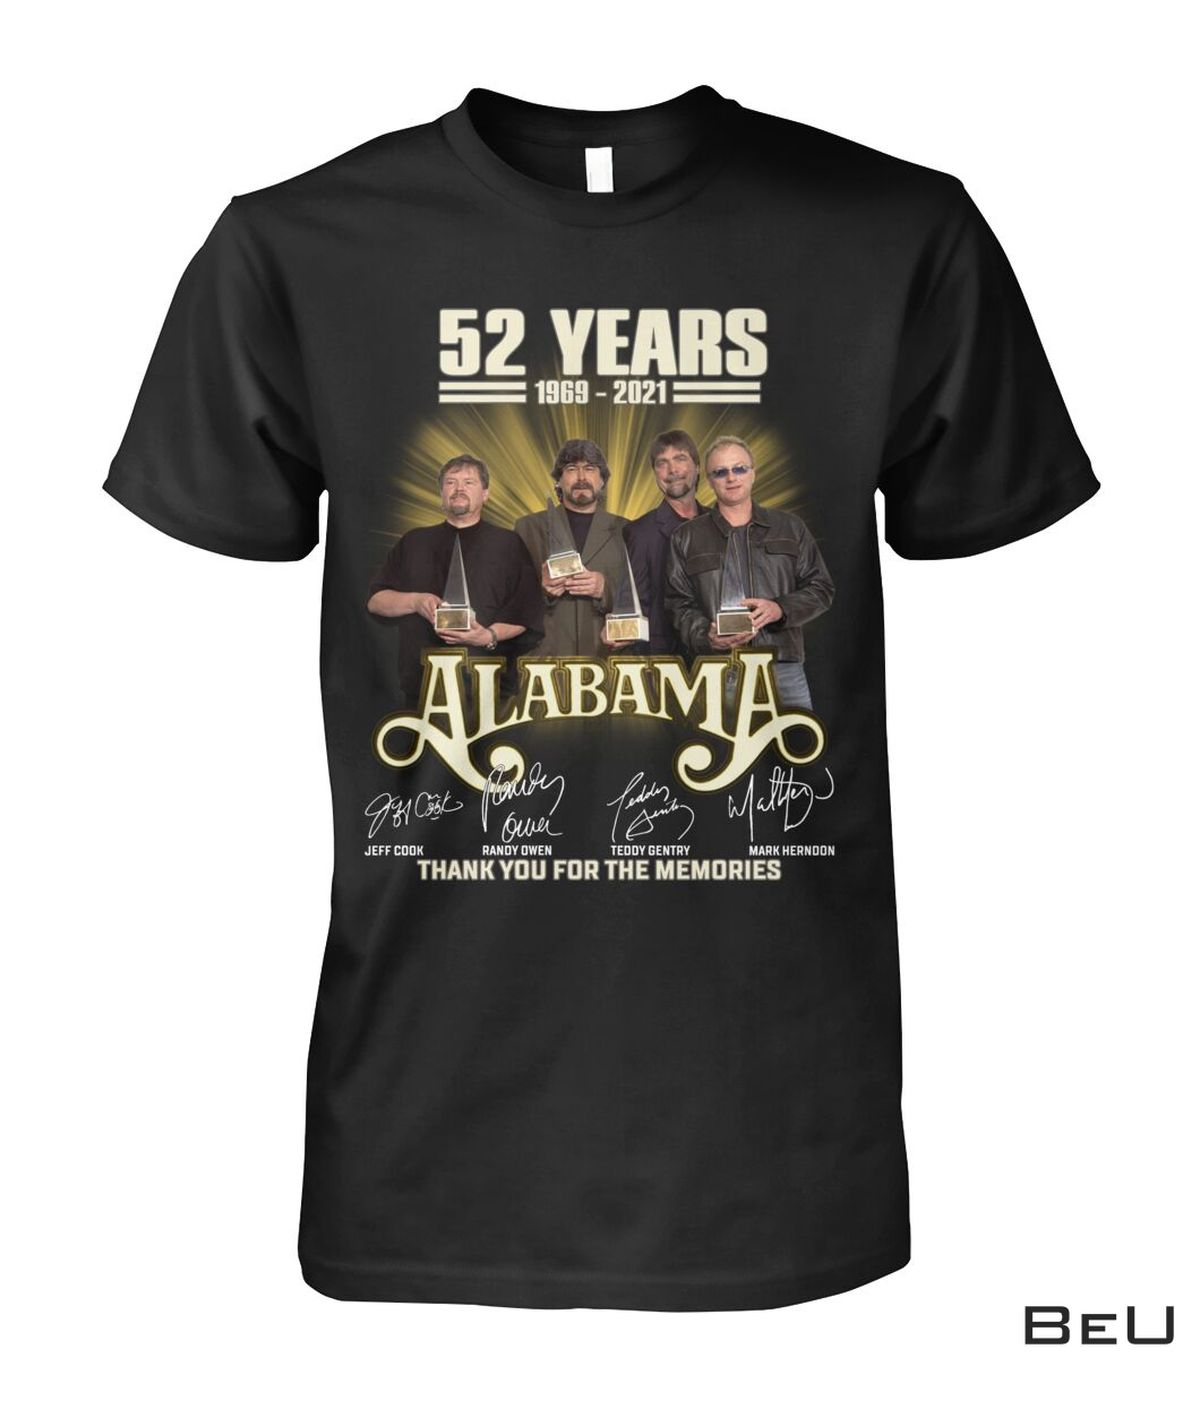 Hot Deal Alabama 52 Years Thank You For The Memories Shirt, hoodie, tank top